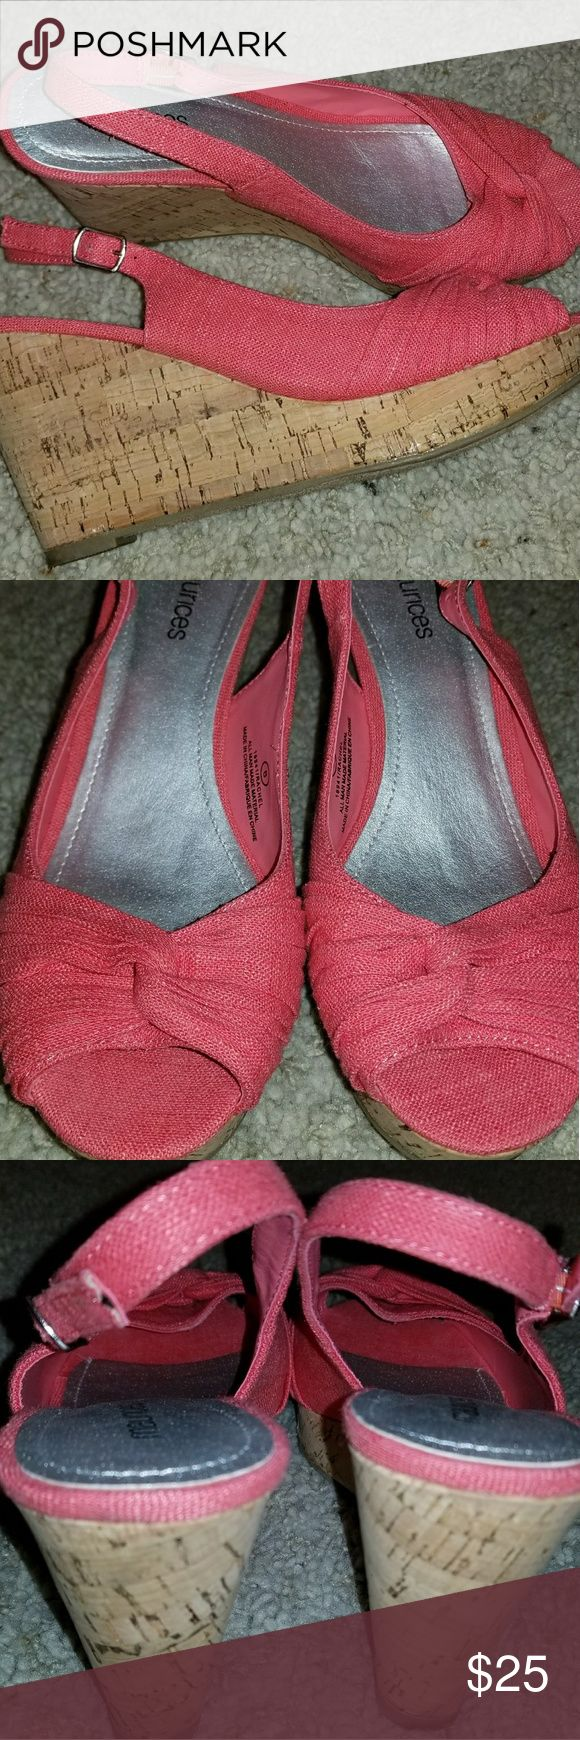 Maurices Coral Wedges Slingback wedges with coral fabric. Awesome condition! Maurices Shoes Wedges